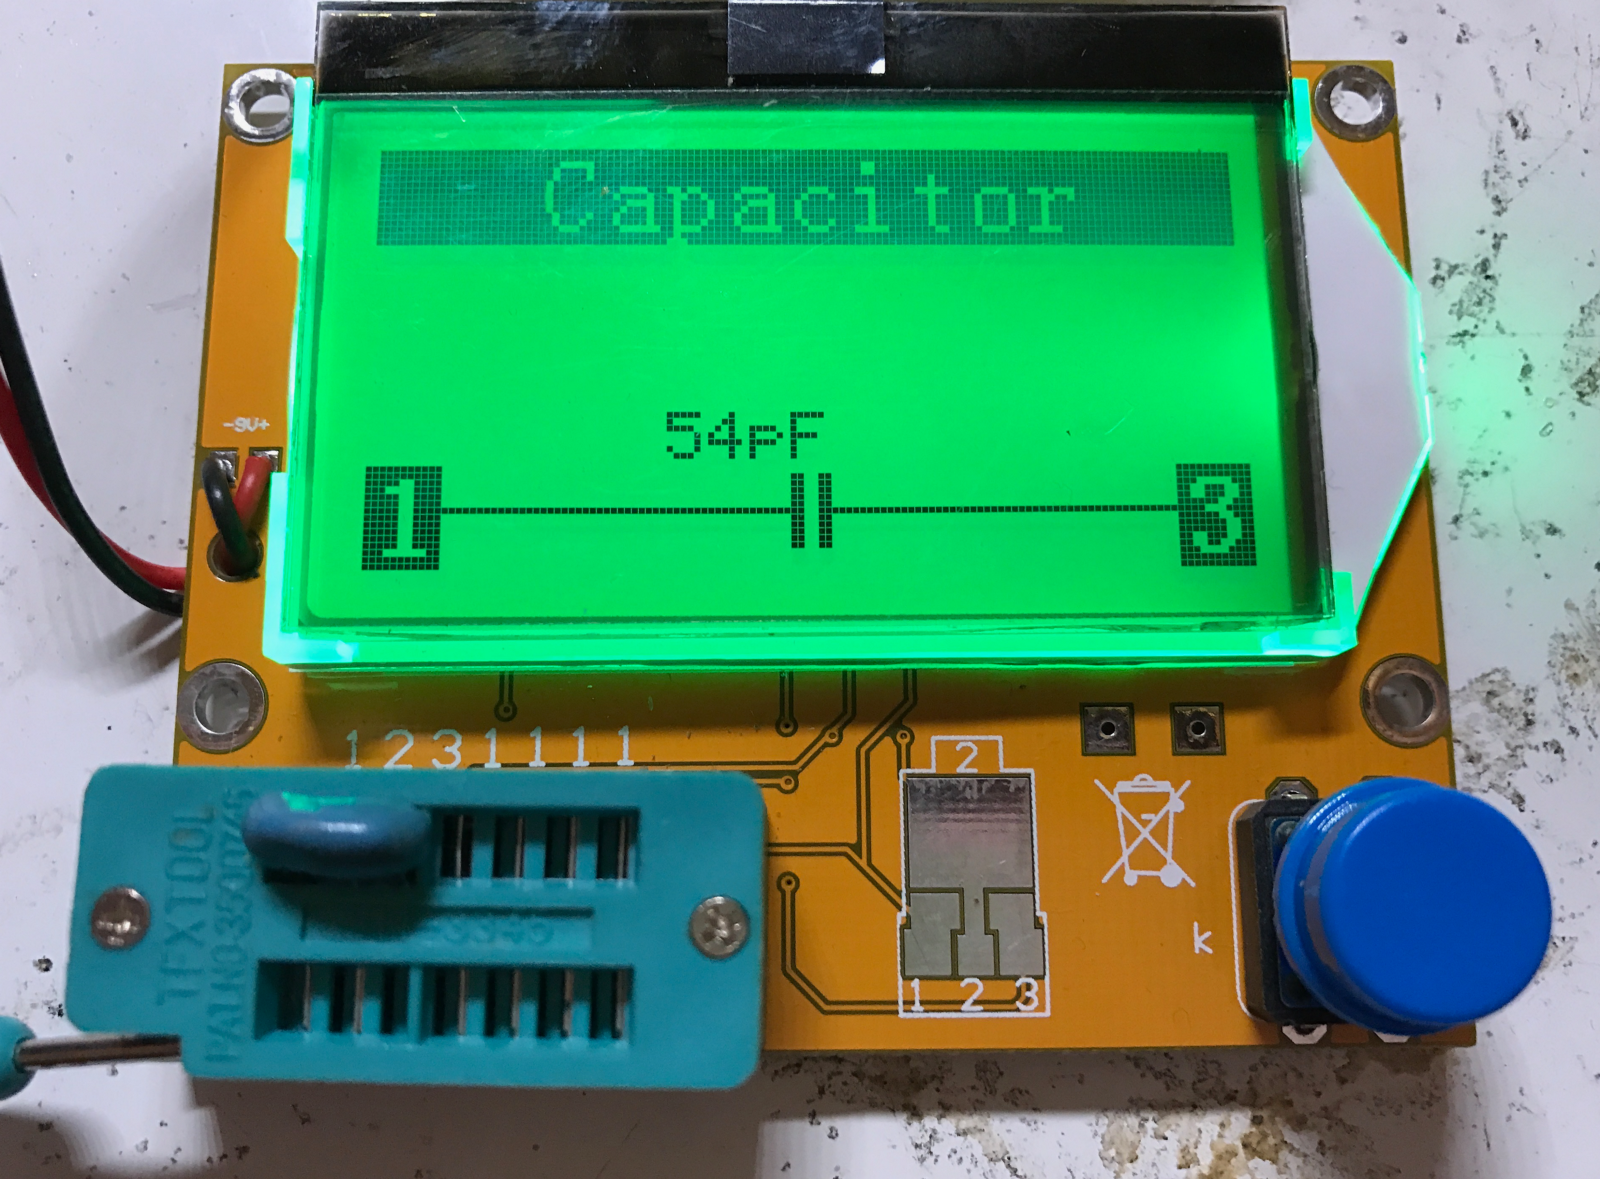 Crystal Oscillator Tester Frequency Counter Kit Review Generator Circuit Using Electronic Circuits Mtester Did Not Recognize Any Of The Quartz Crystals As Anything Only Showing Unknown Damaged Missing Part